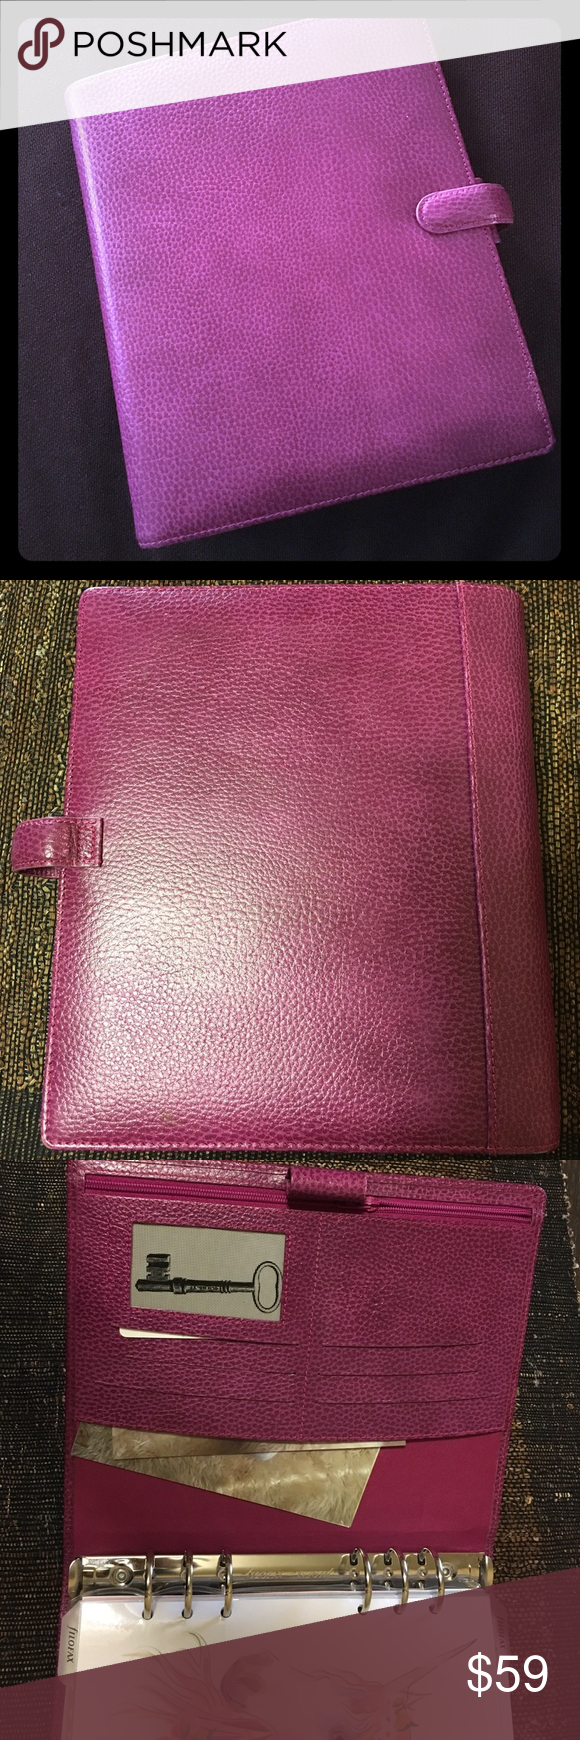 Filofax A5 binder w6 rings. Raspberry leather plan Filofax planner A5 size, 6 rings. Many pockets and slits. Will include my favorite Unicorn fave page, some other clear clip in pockets i have purchased. Amazing condition, no stains. filofax Accessories Laptop Cases